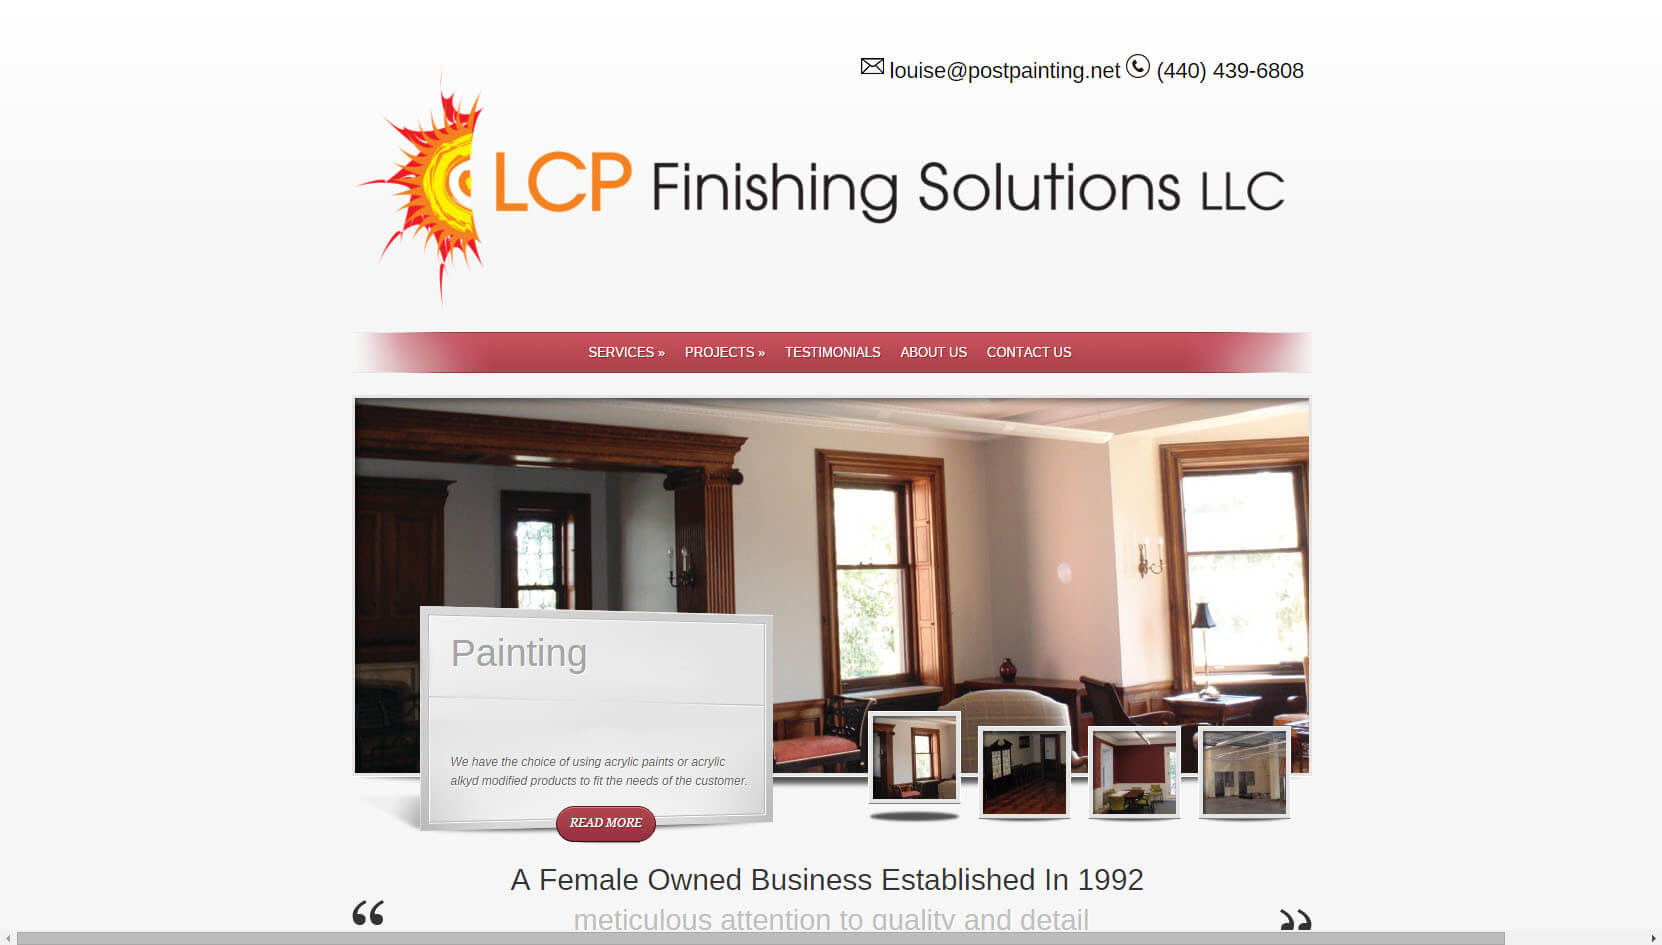 LCP Finishing Solutions LLC